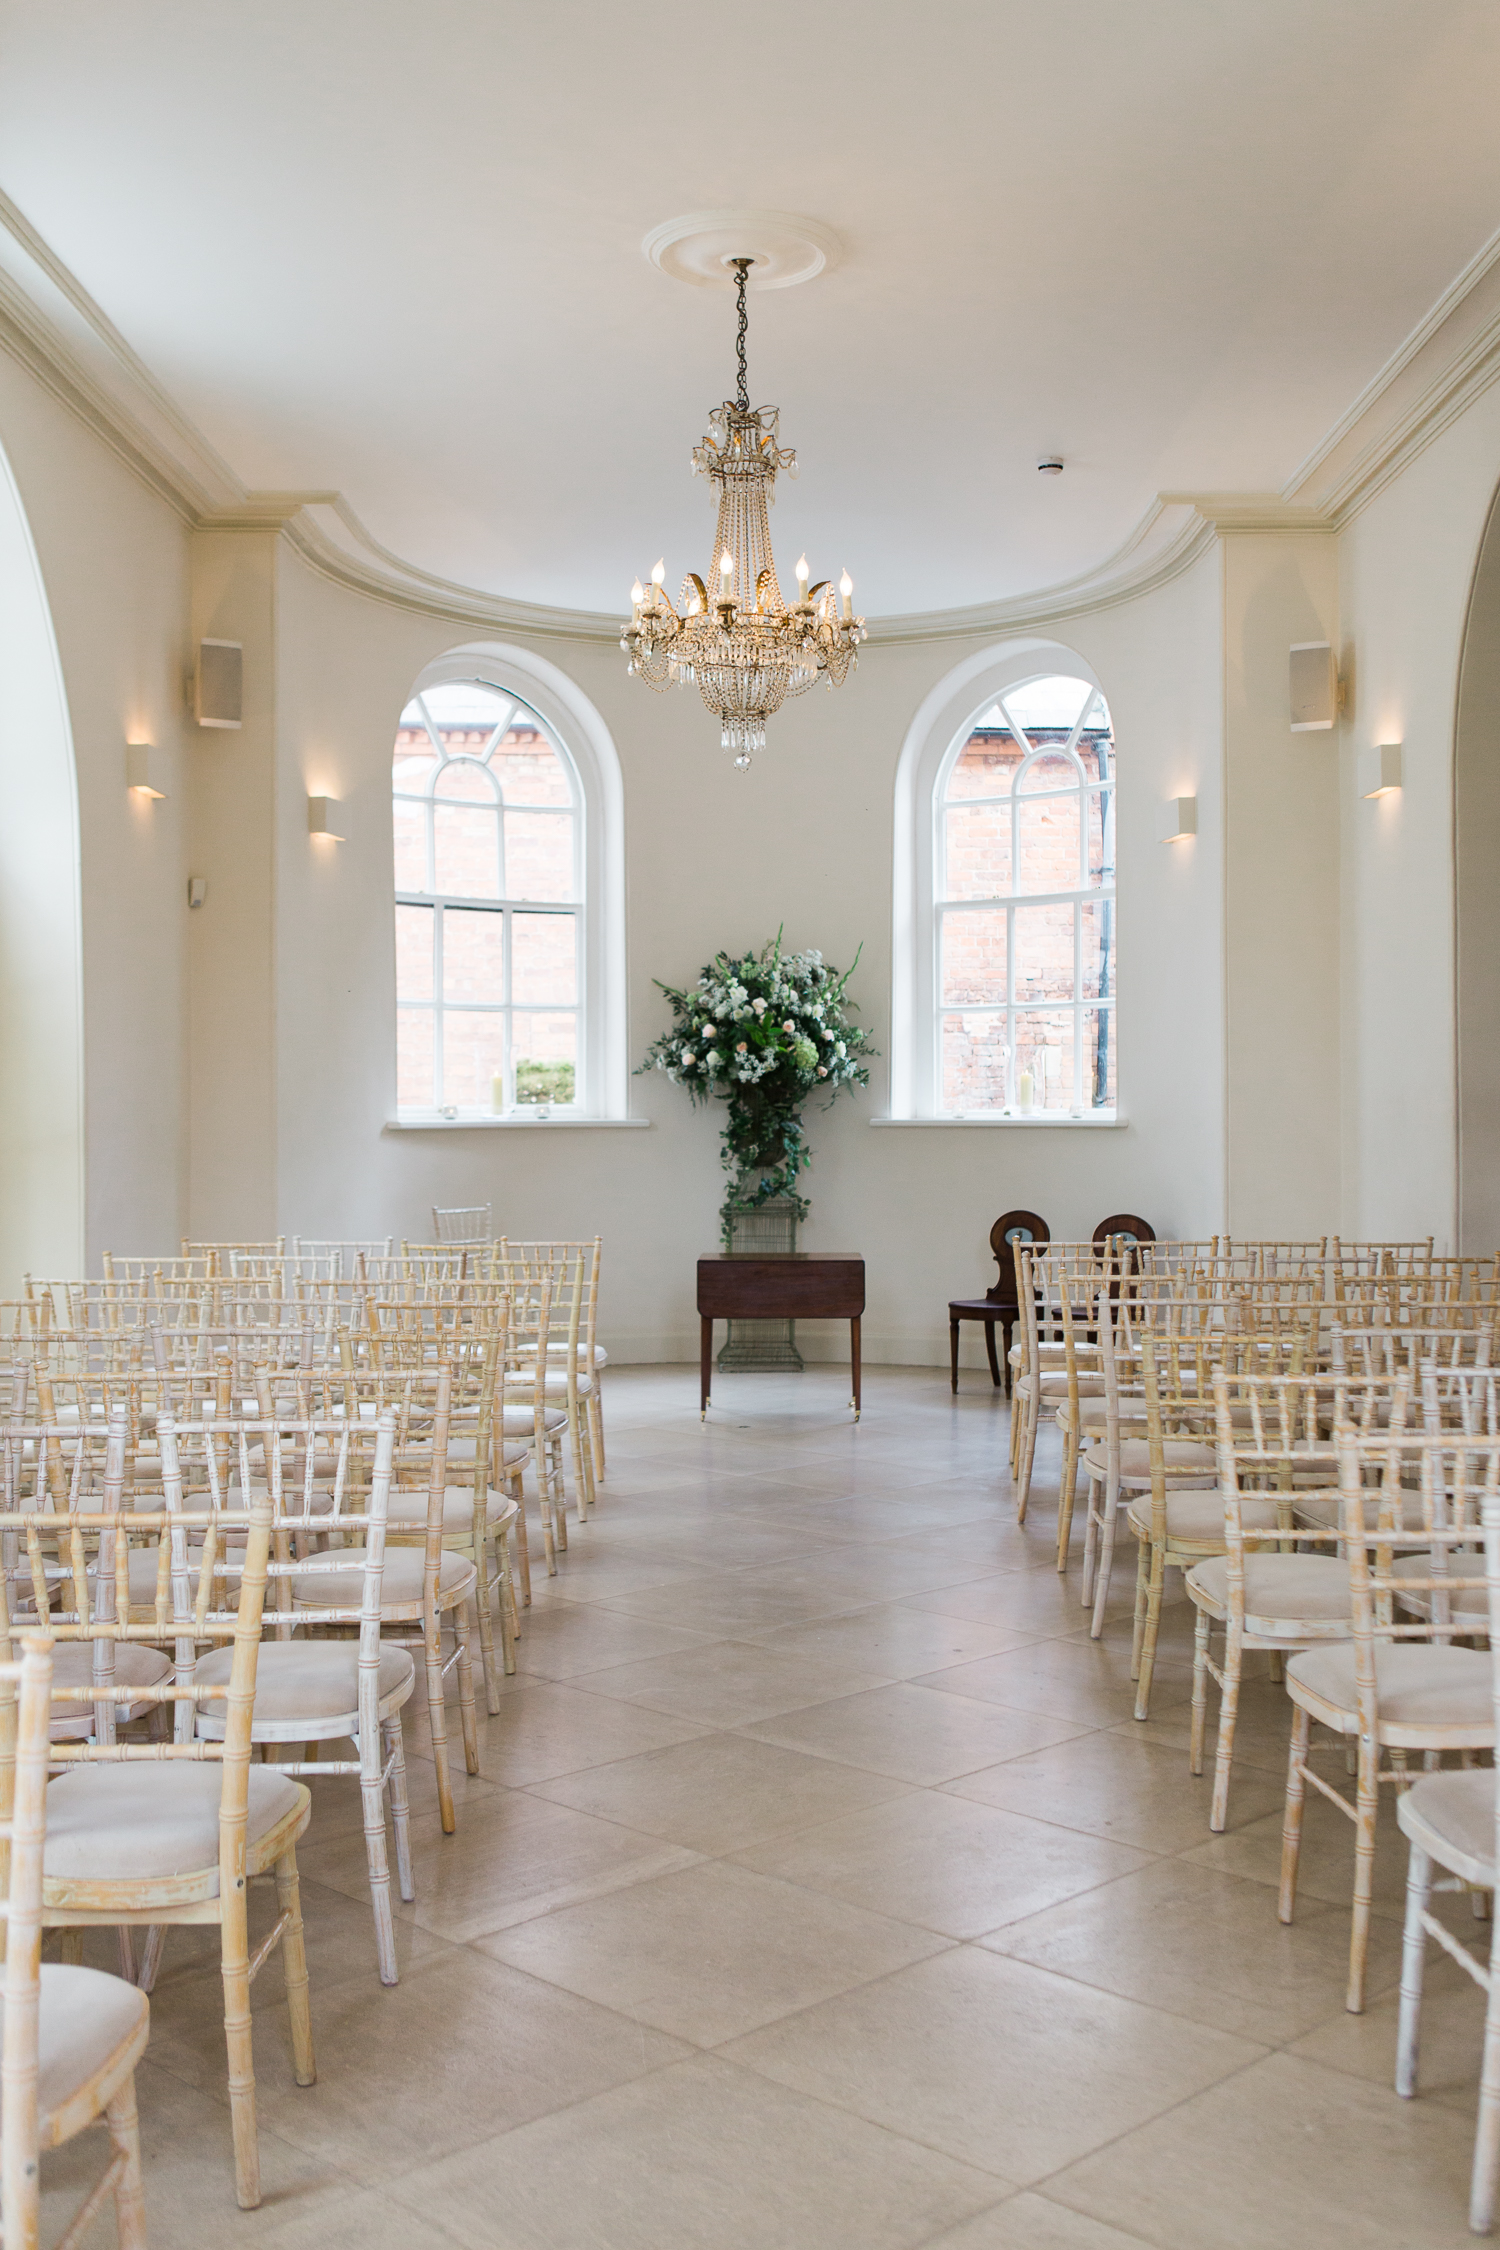 Ceremony room at Iscoyd Park by UK Fine Art Wedding Photographer based in the North West.